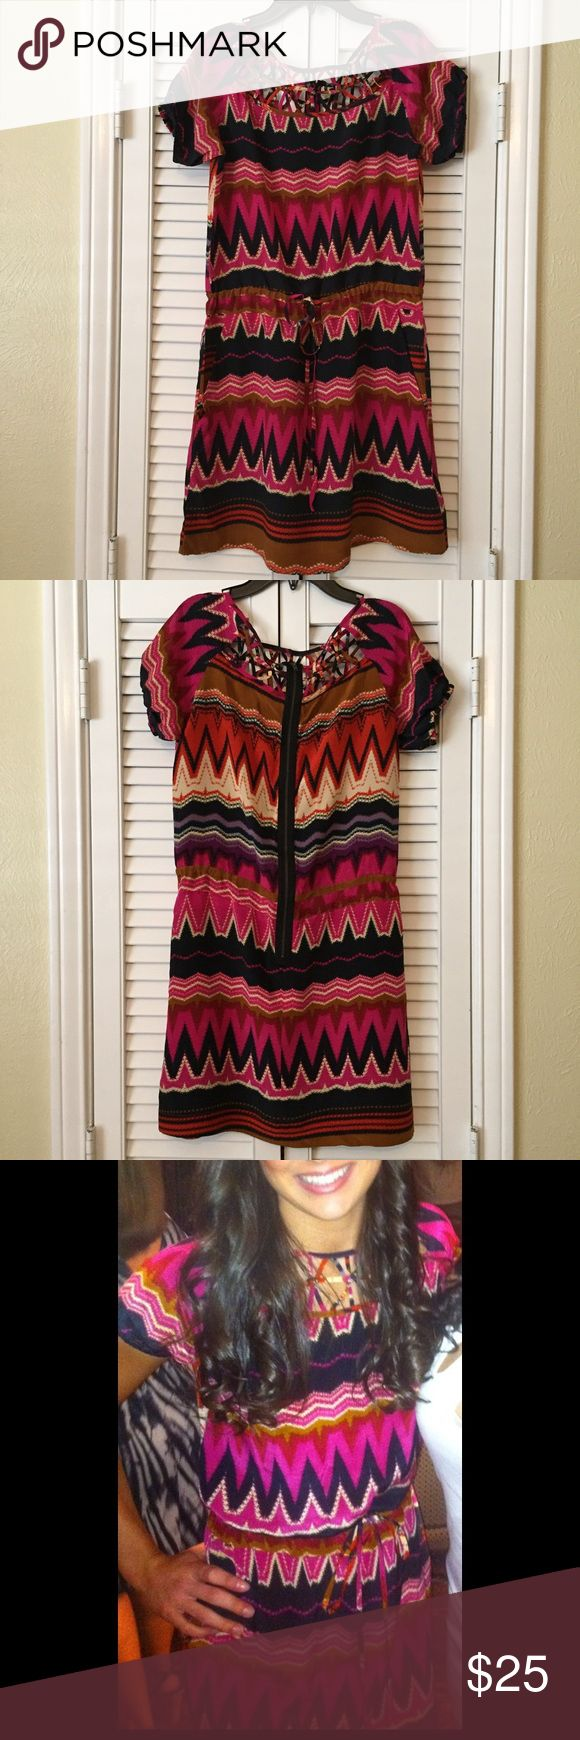 Gianni Bini tribal print dress. I have pockets!! Cute dress cut out around the top. Cinched around the waist. Exposed zipper in the back. Gianni Bini Dresses Midi